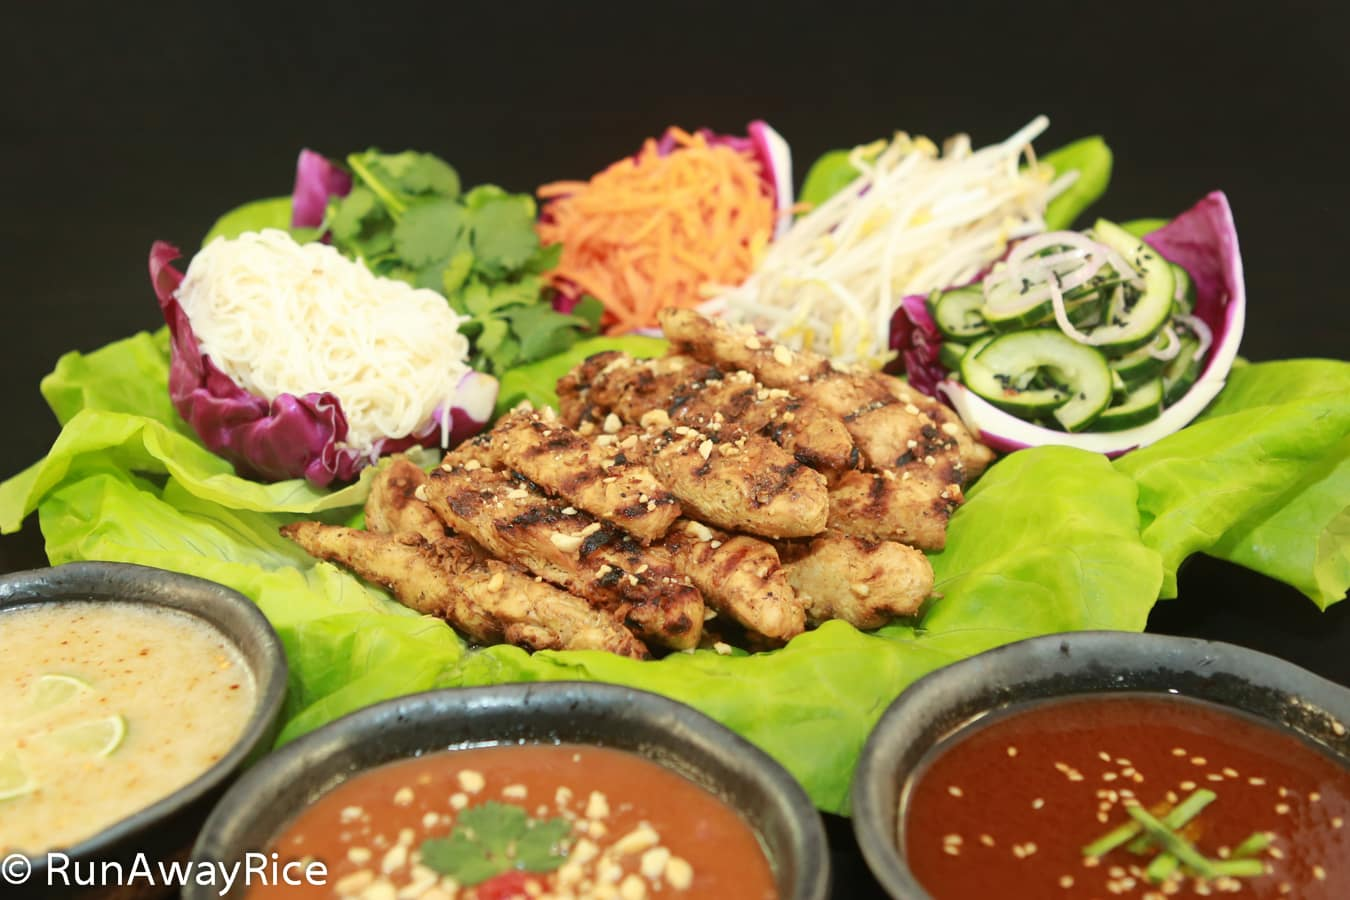 Grilled Chicken Lettuce Wraps Easy Recipe With Video Runawayrice